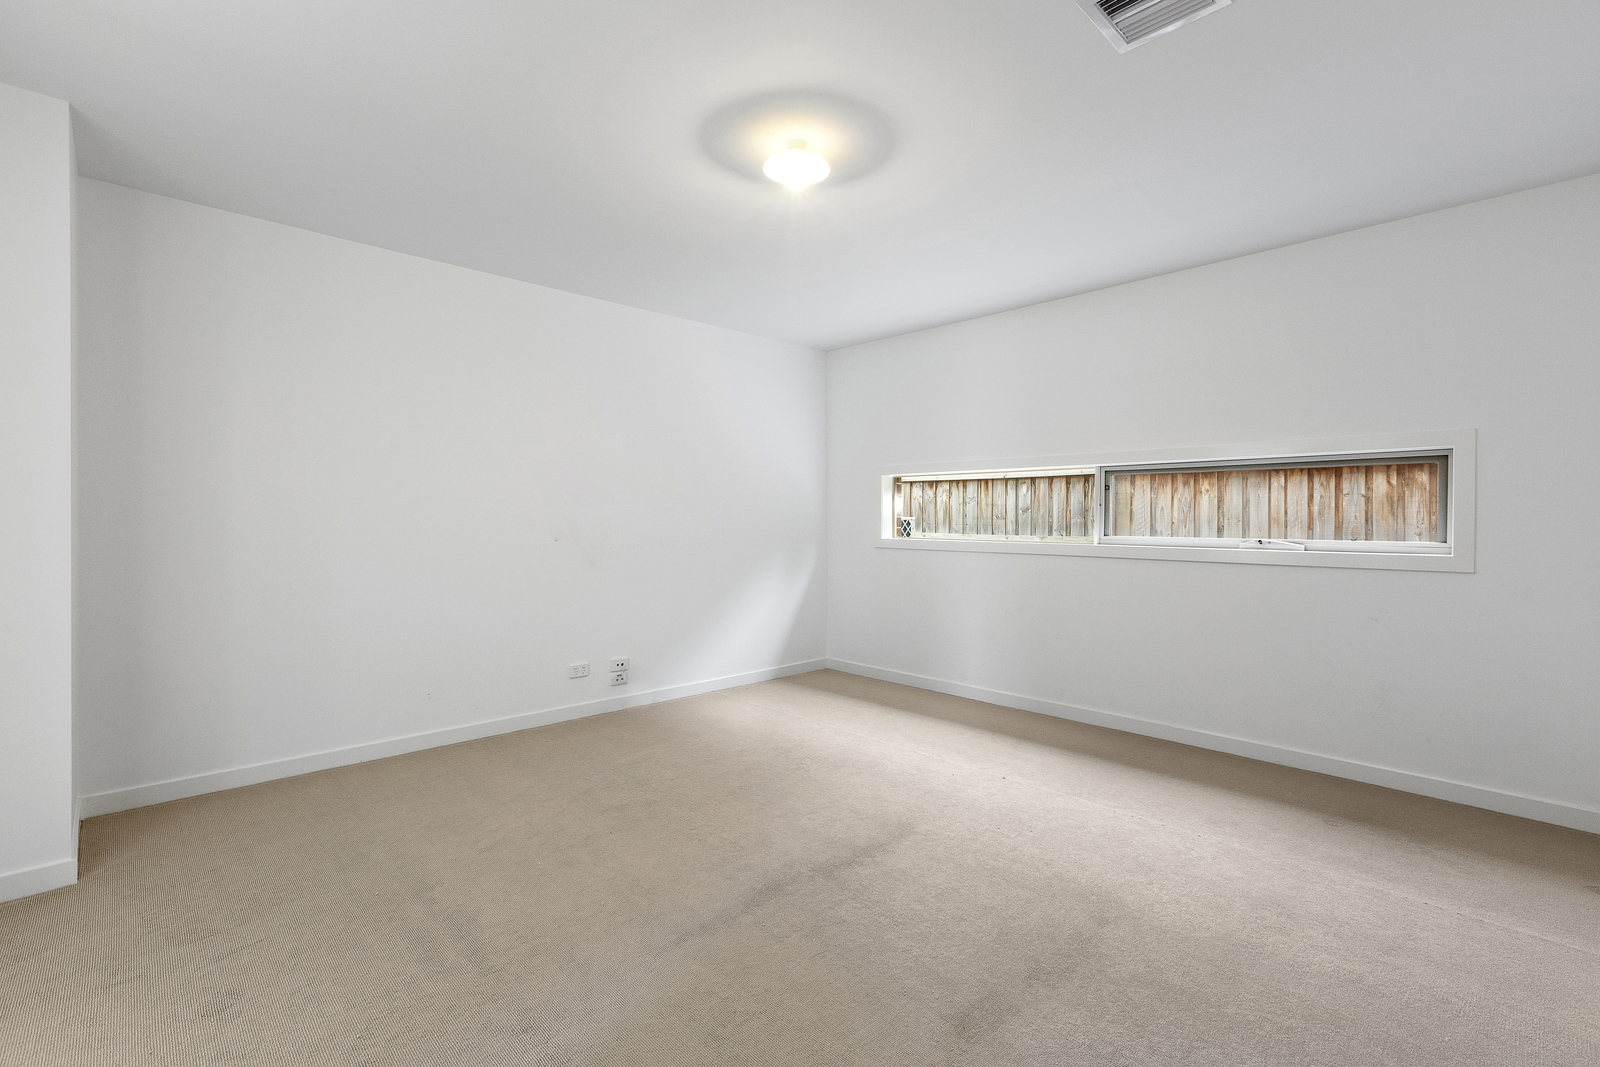 2A Waterview Close, Mount Eliza 3930 - Image 6